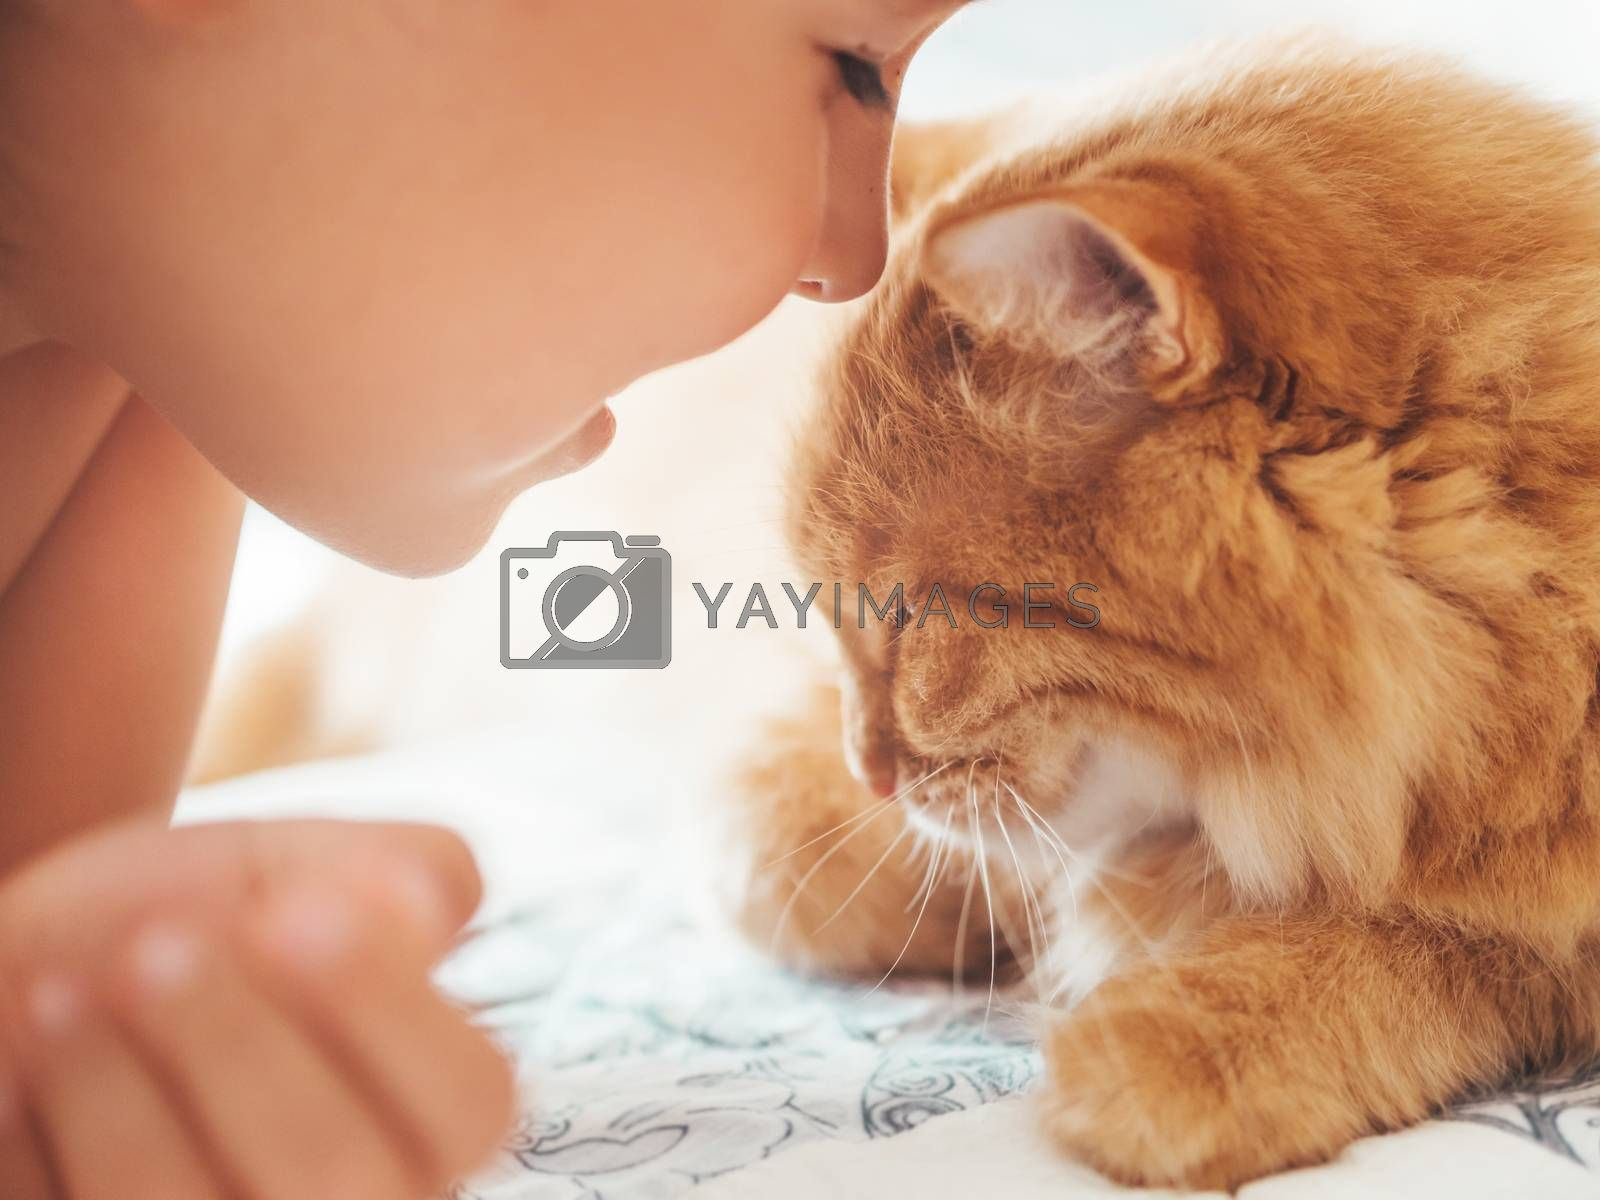 Cute ginger cat and child snuggle. Kid and fluffy pet. Faces of little boy and fuzzy domestic animal. Morning bedtime.